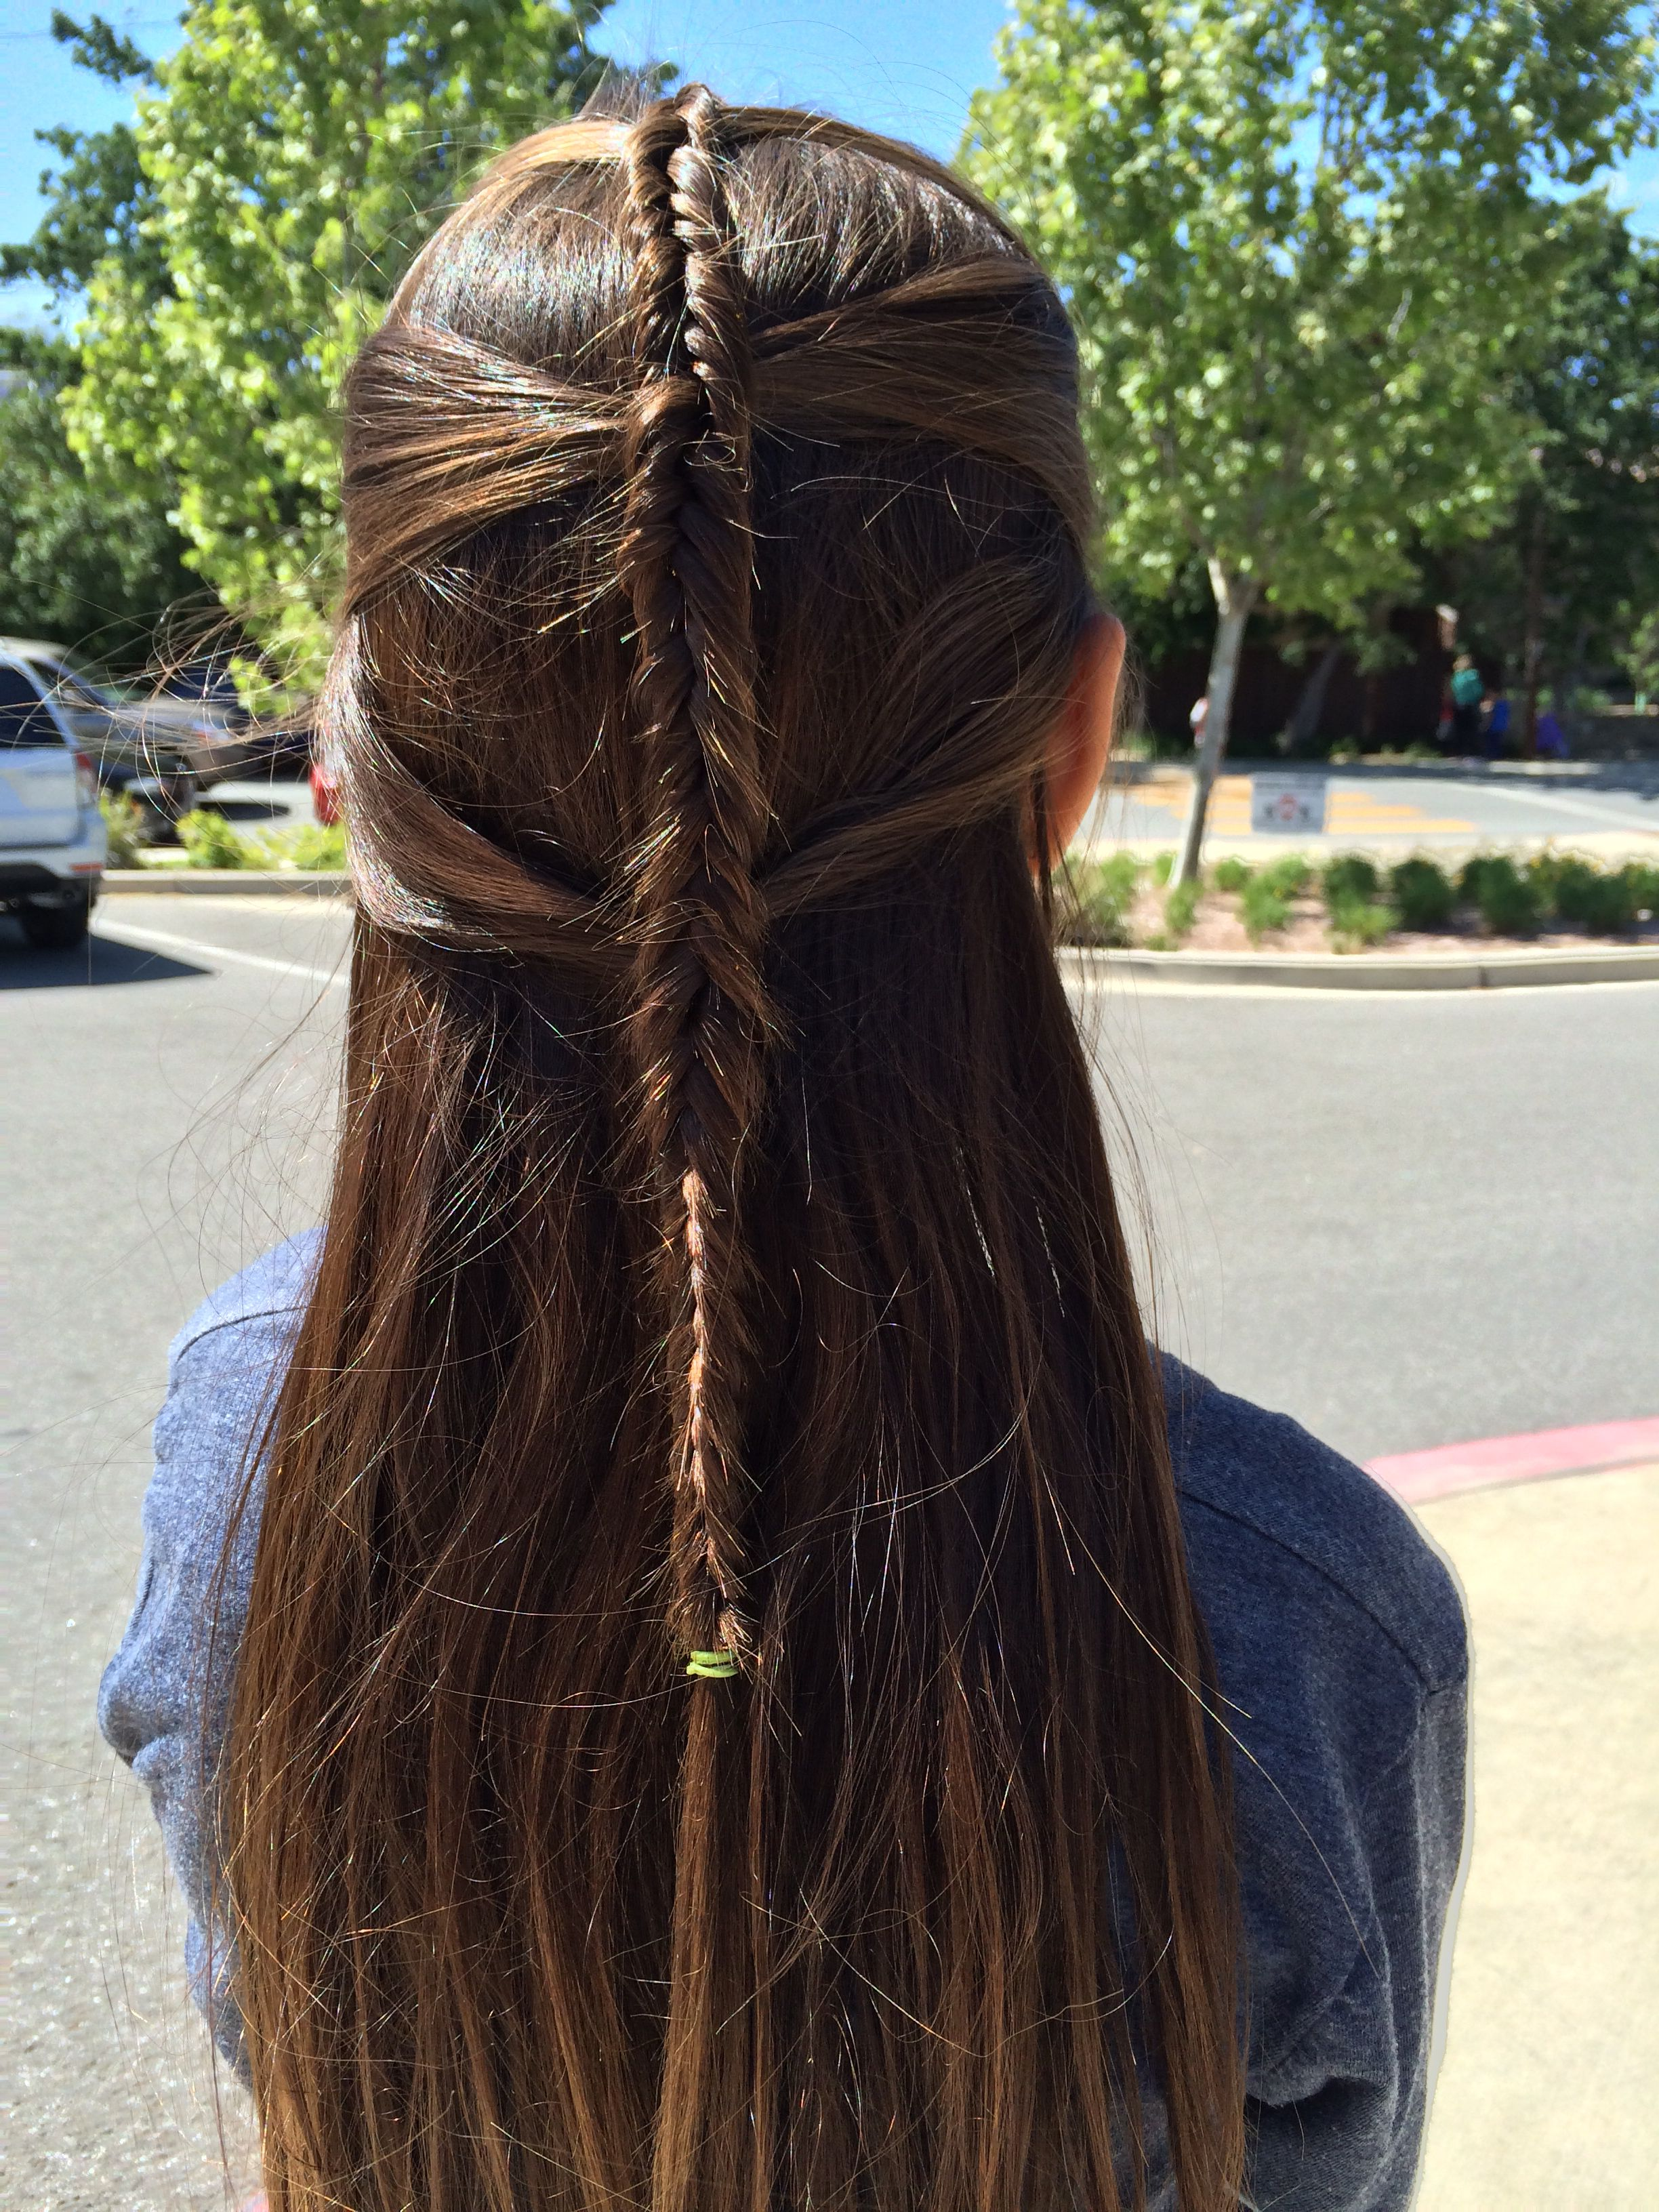 Lord of the rings elf inspired hair.